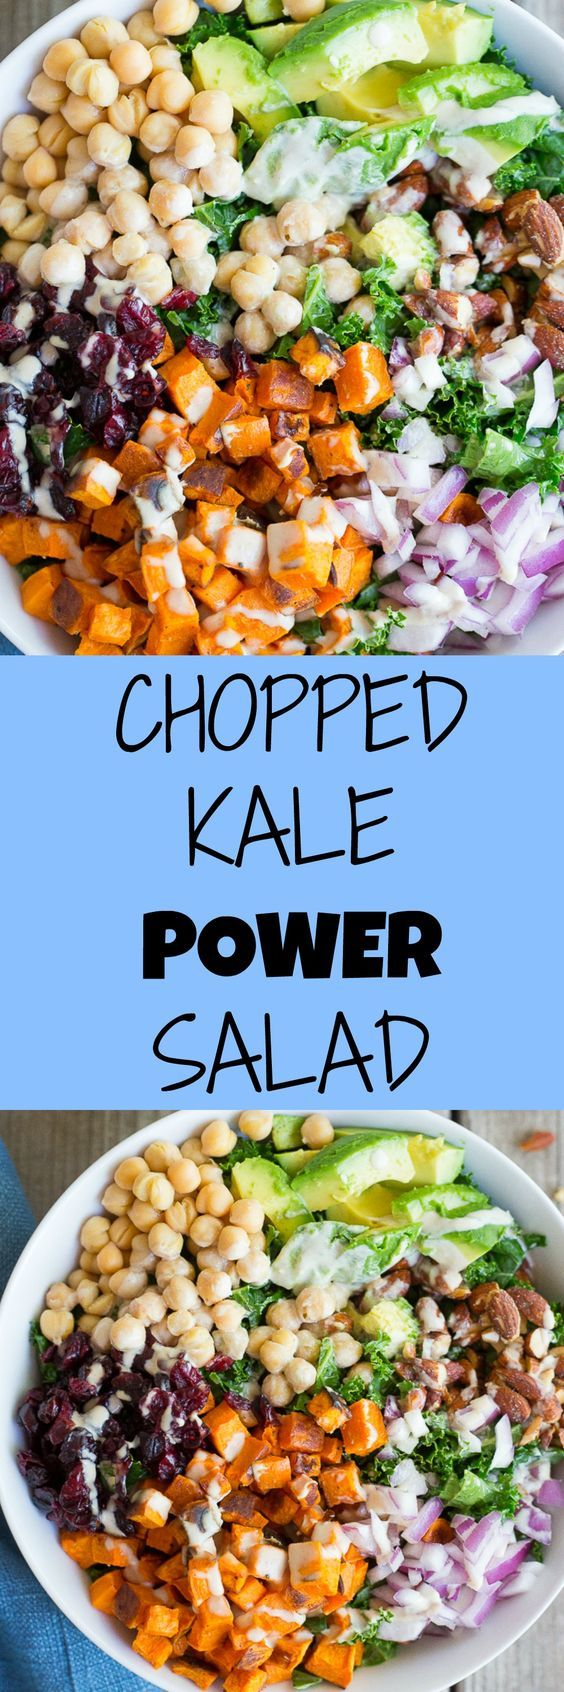 Chopped Kale Power Salad with Lemon Tahini Dressing - This delicious, healthy and filing salad is great for a make ahead lunch! It's packed with tons of healthy ingredients and is gluten free and vegan too!